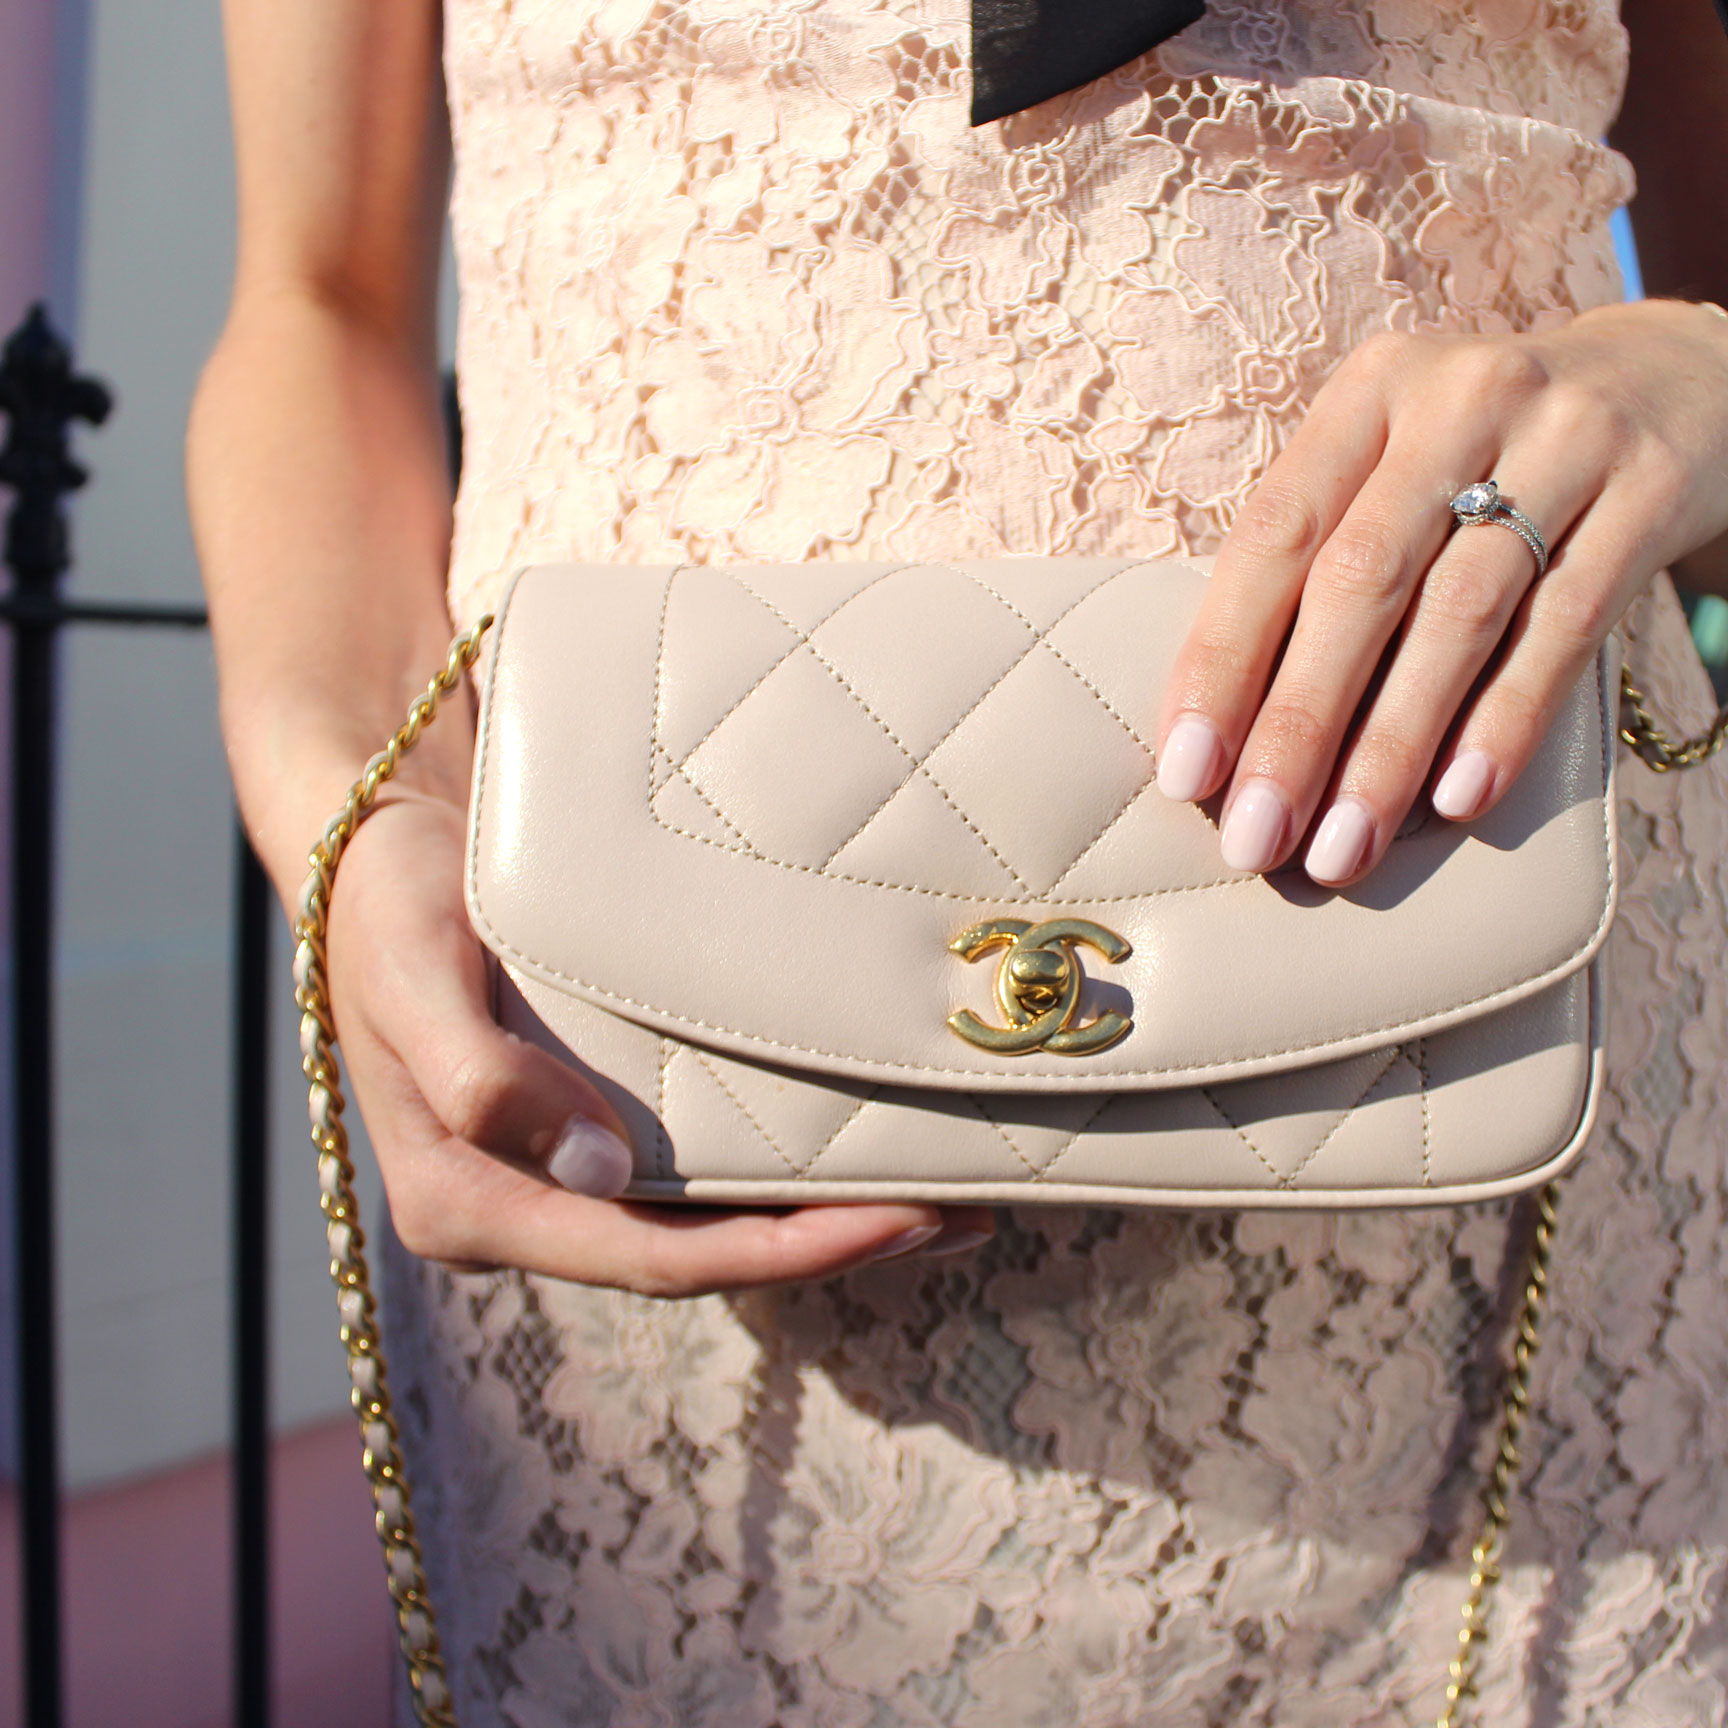 Blush pink quilted Chanel bag and Essie nail polish in Ballet Slippers